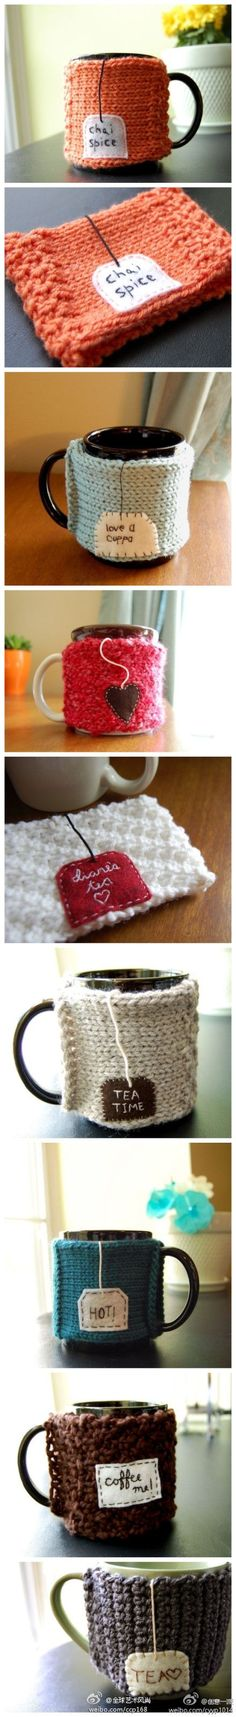 diy cup sweater:) cute idea